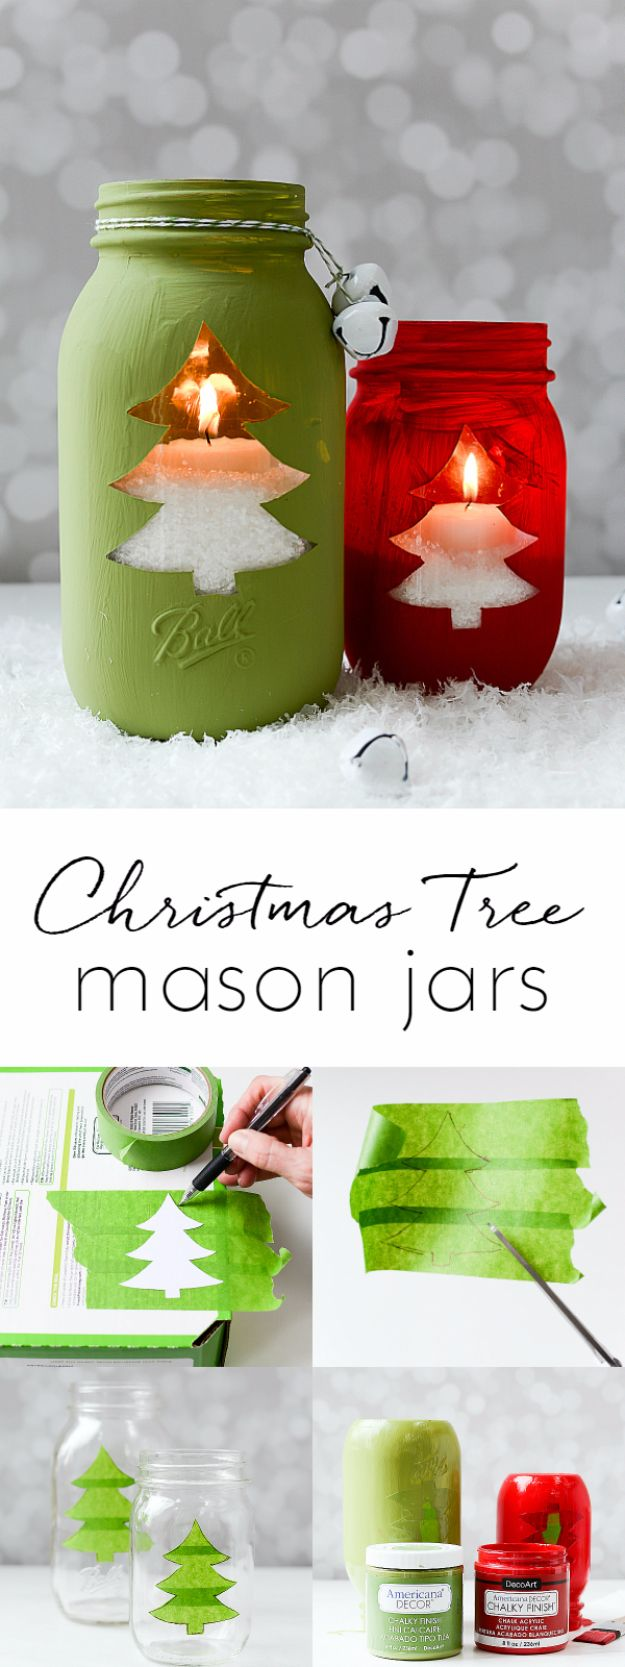 Cheap DIY Christmas Decor Ideas and Holiday Decorating On A Budget - Christmas Tree Mason Jars - Easy and Quick Decorating Ideas for The Holidays - Cool Dollar Store Crafts for Xmas Decorating On A Budget - wreaths, ornaments, bows, mantel decor, front door, tree and table centerpieces #christmas #diy #crafts